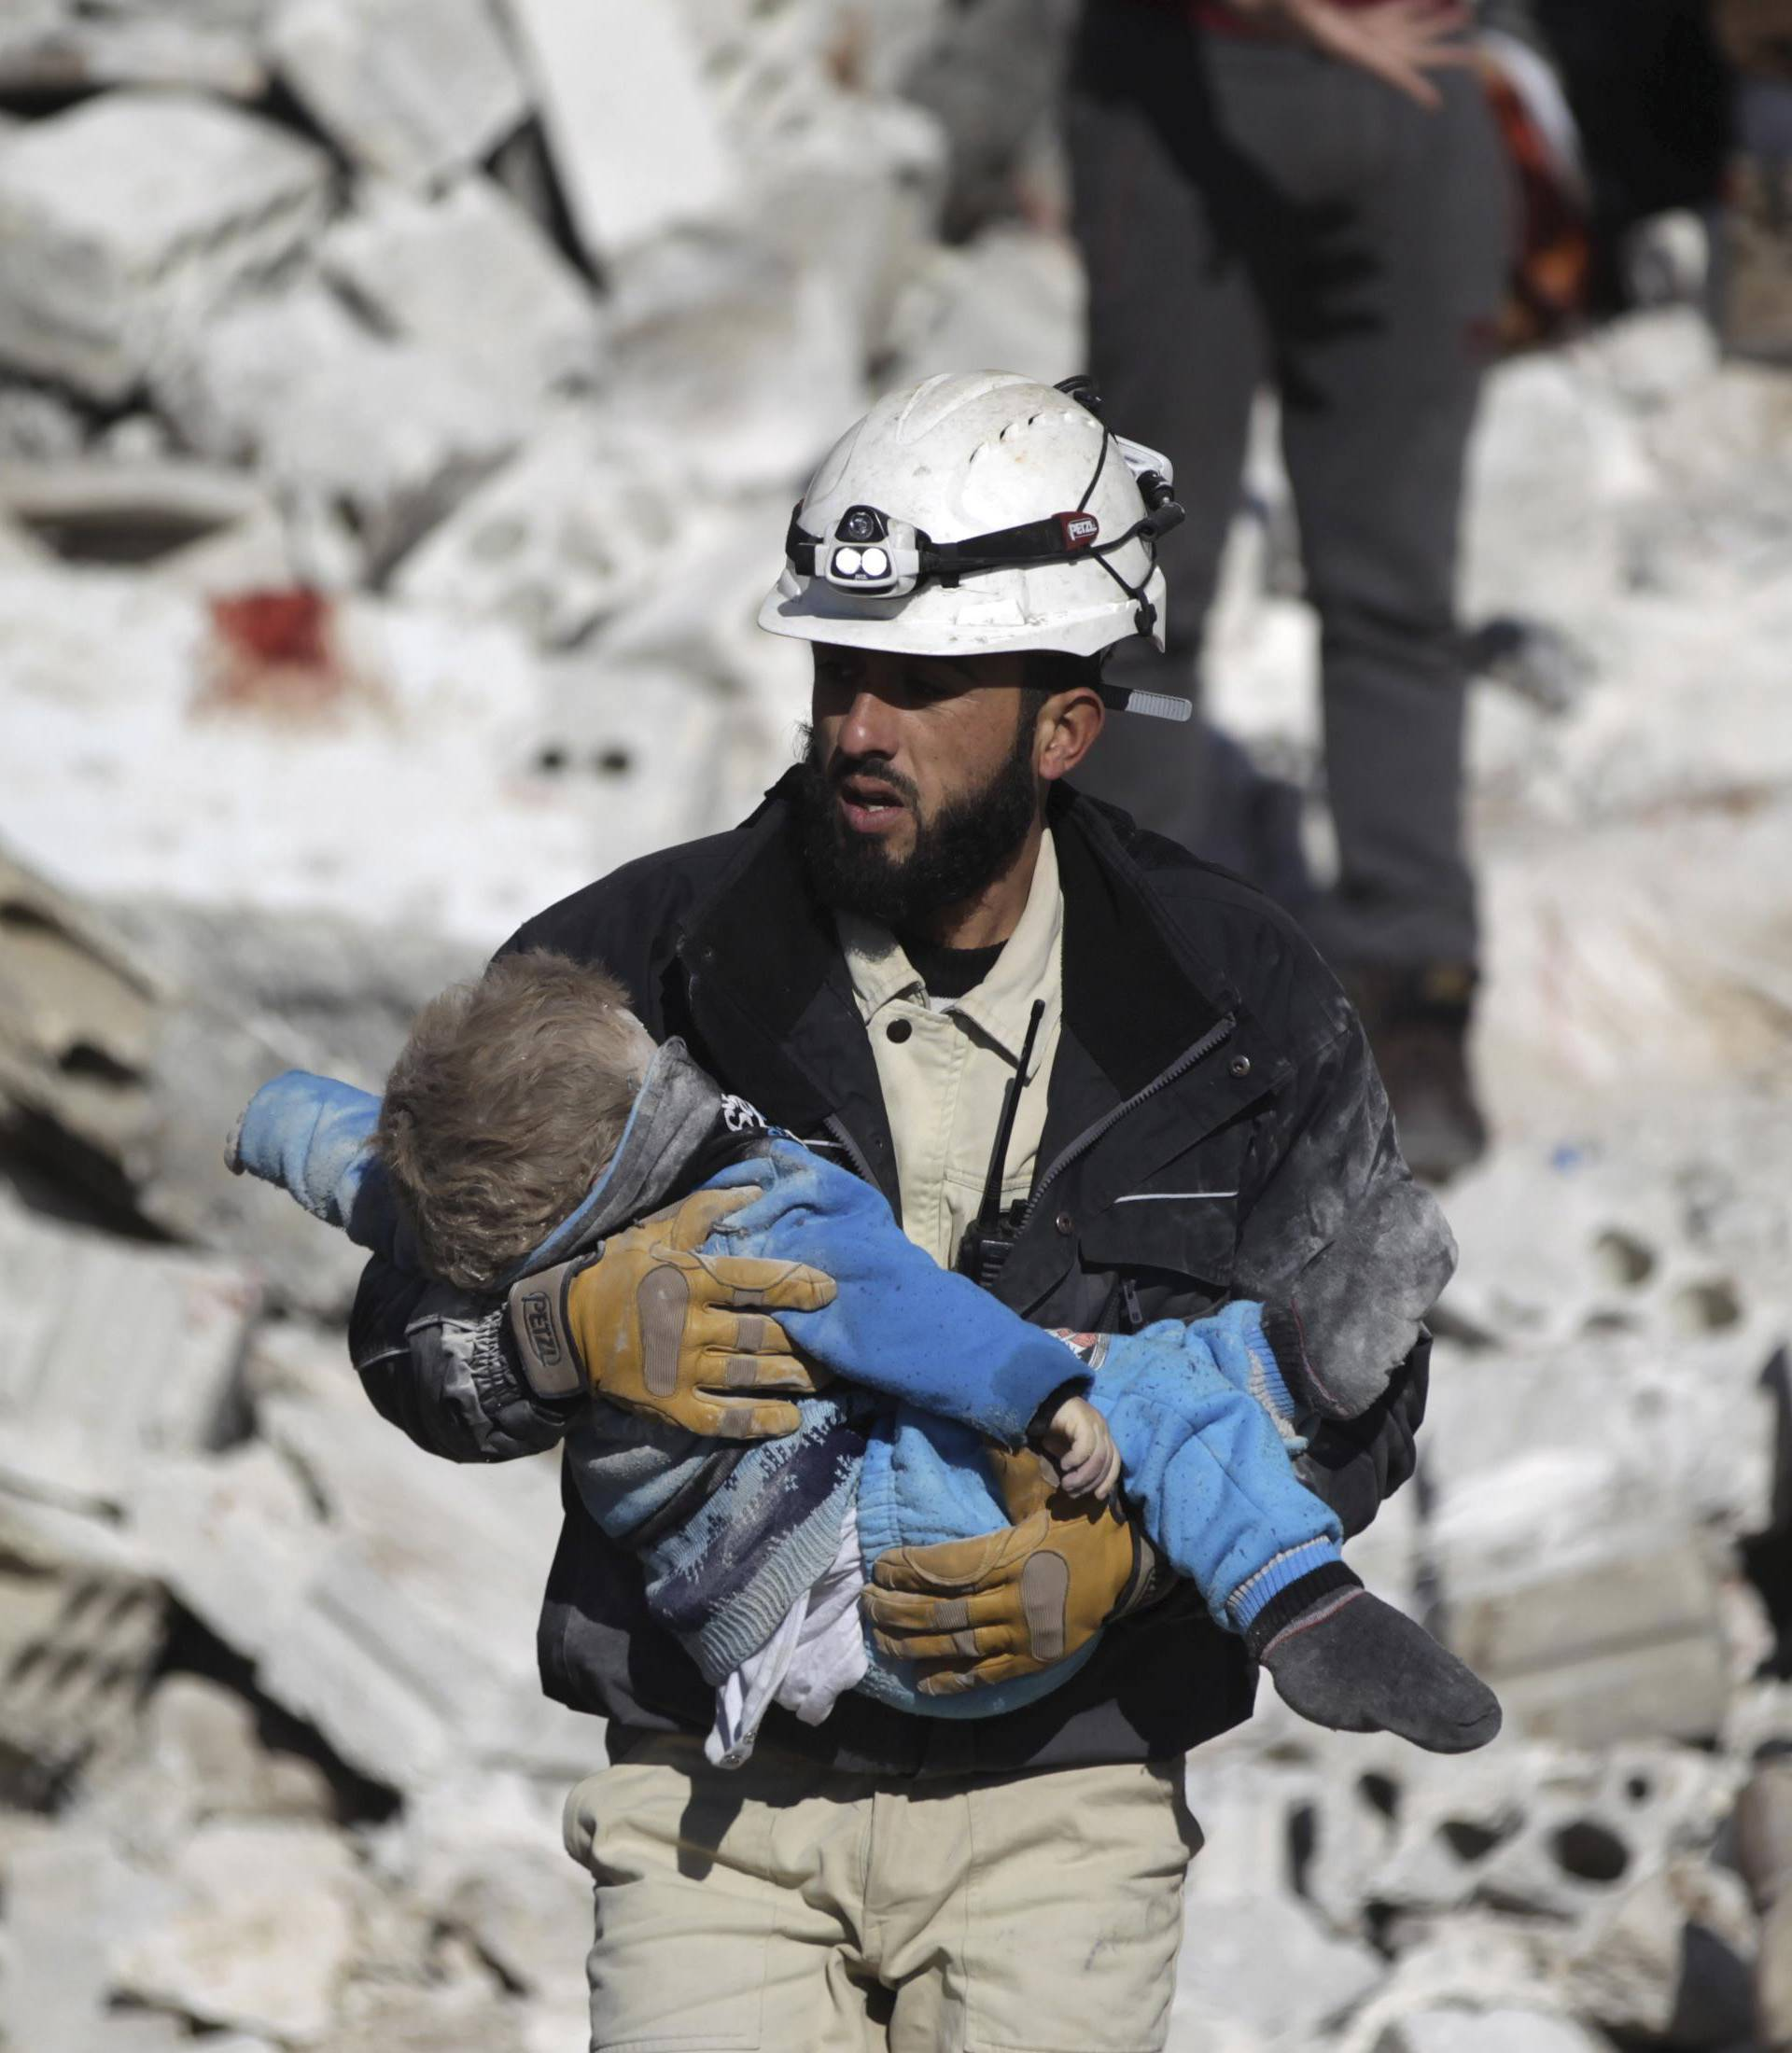 A civil defence member carries a dead child in a site hit by what activists said were airstrikes carried out by the Russian air force in the rebel-controlled area of Maaret al-Numan town in Idlib province, Syria